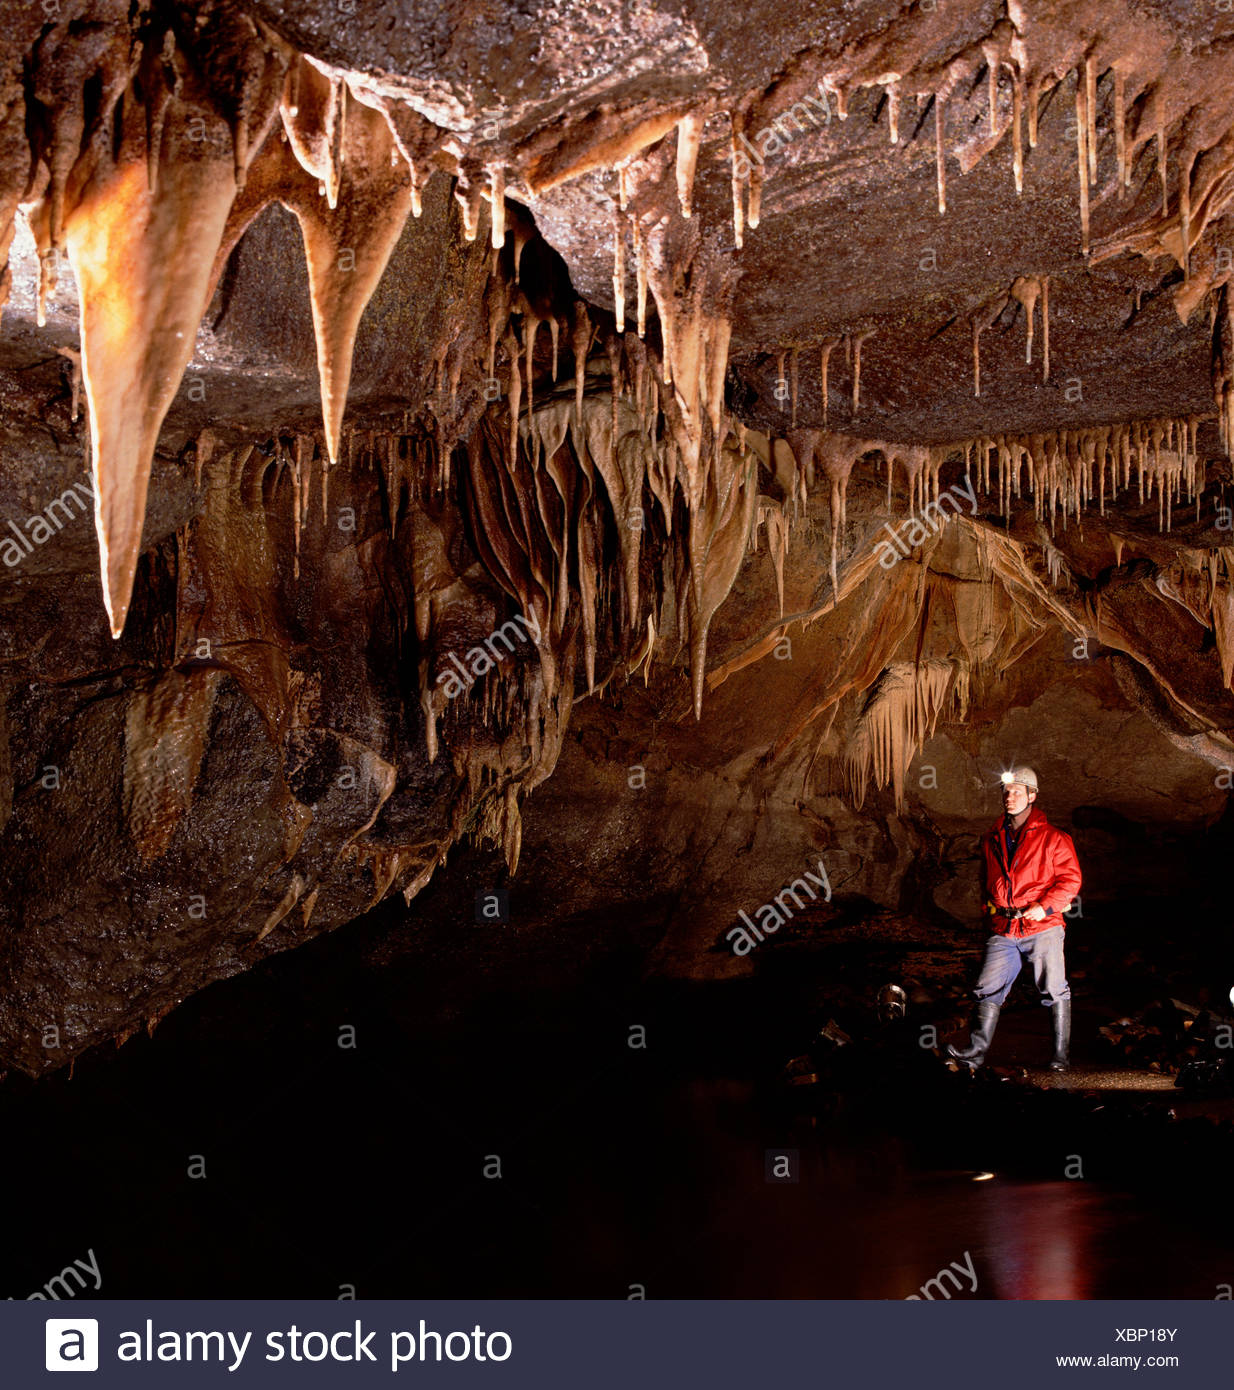 Man Caves Northern Ireland : Fermanagh caves stock photos